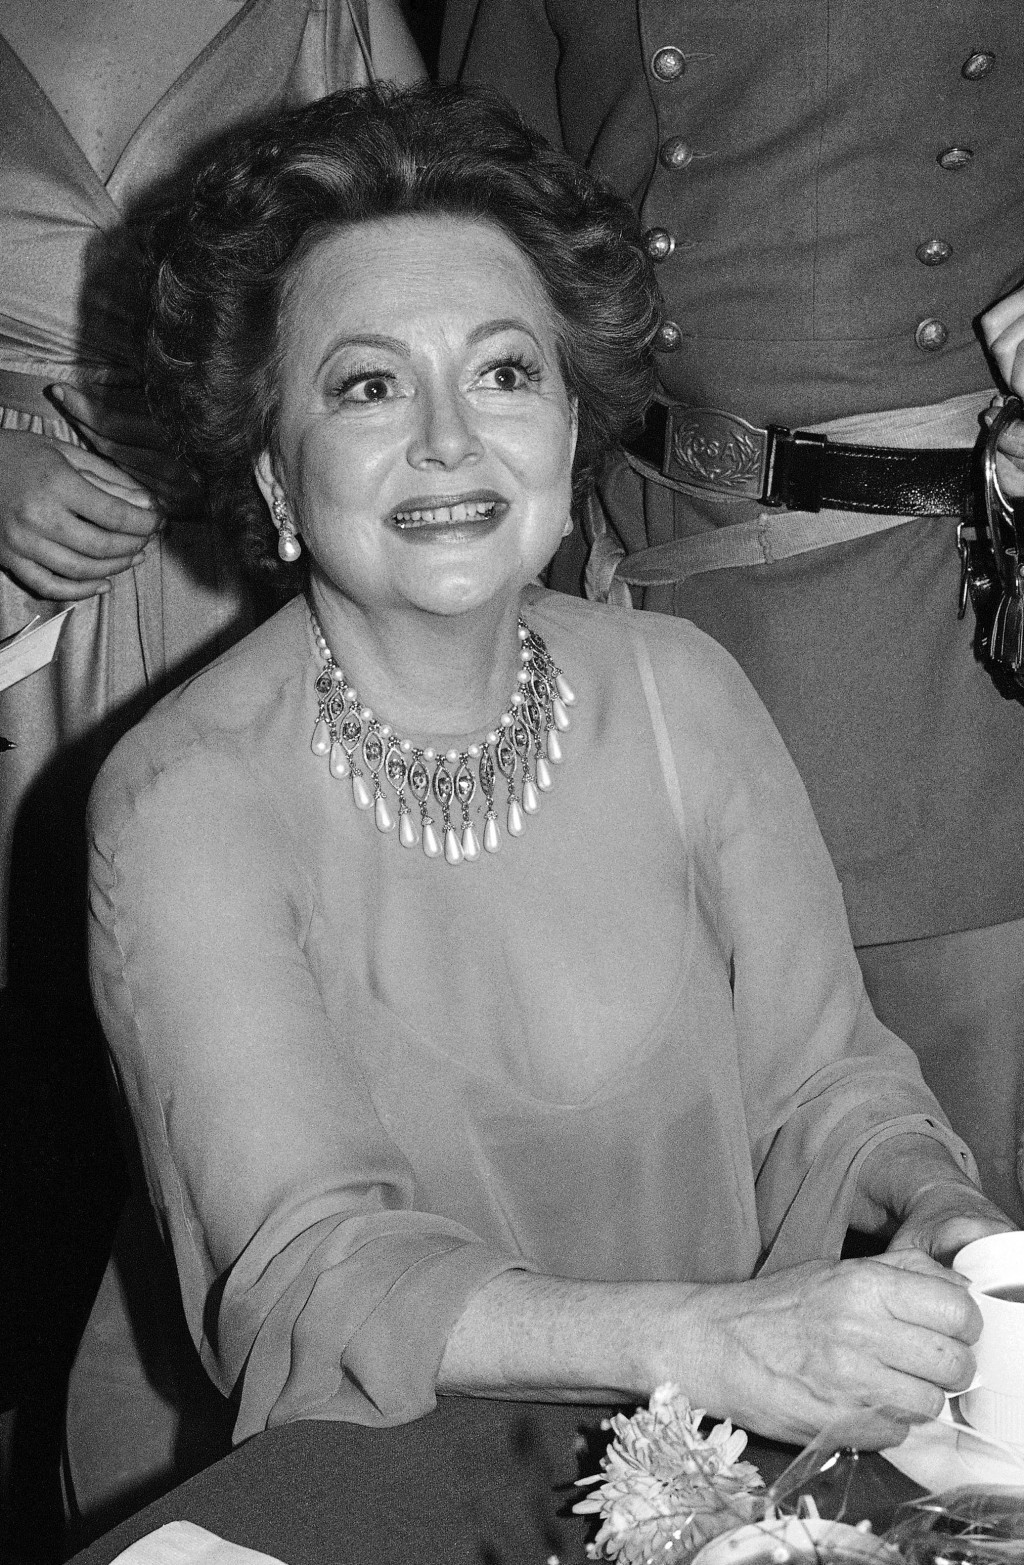 FILE - In this file photo dated Dec. 28, 1979, actress Olivia De Havilland at Hollywood dinner party. Olivia de Havilland, Oscar-winning actress has d...